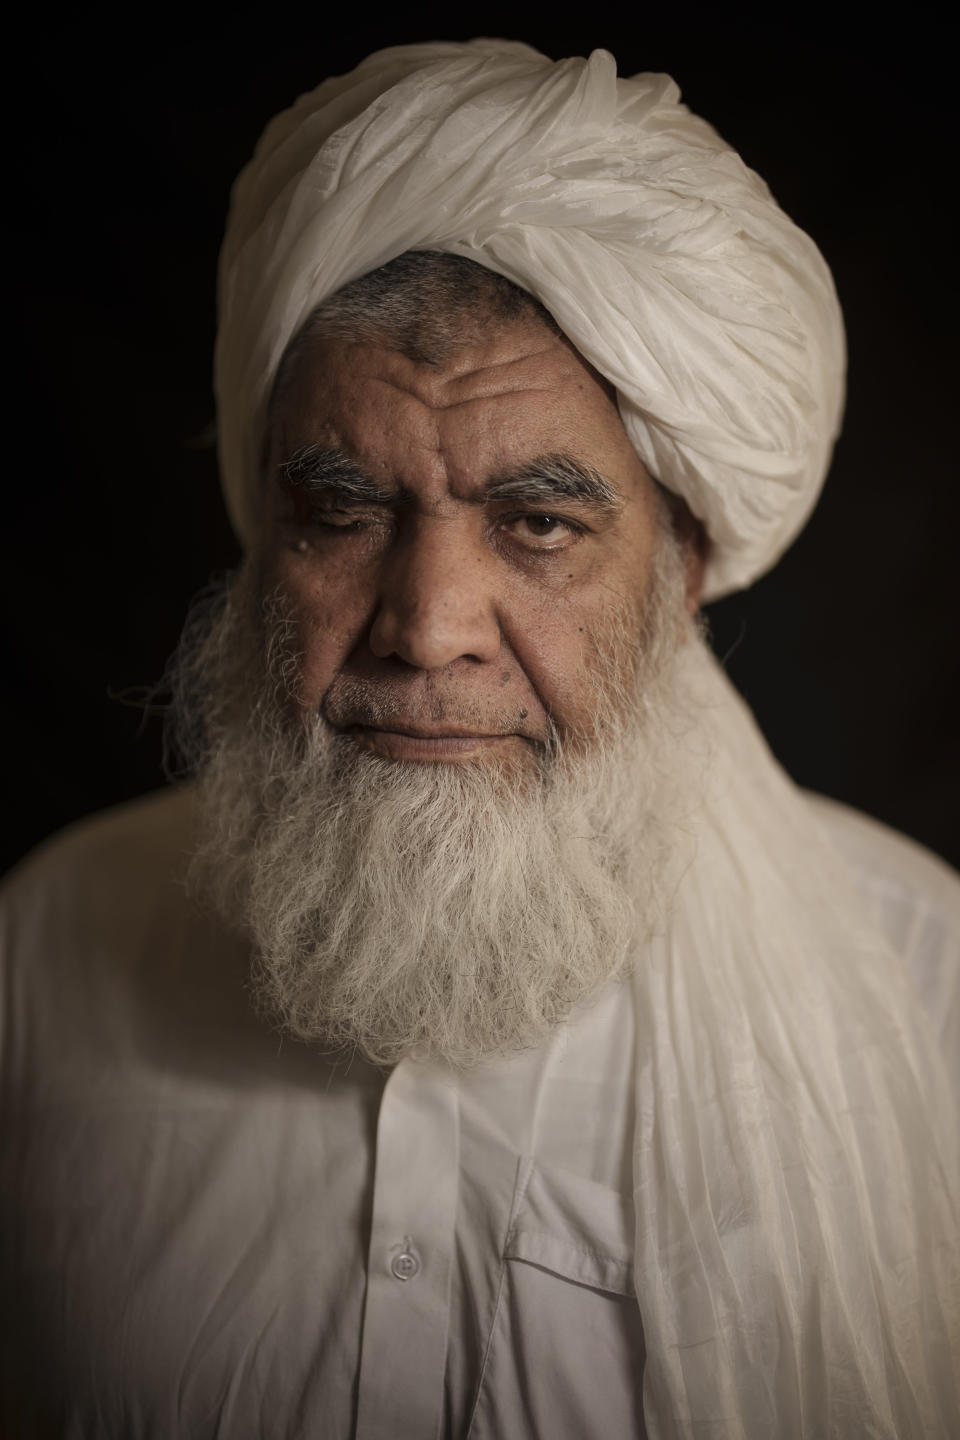 Taliban To Revive Executions